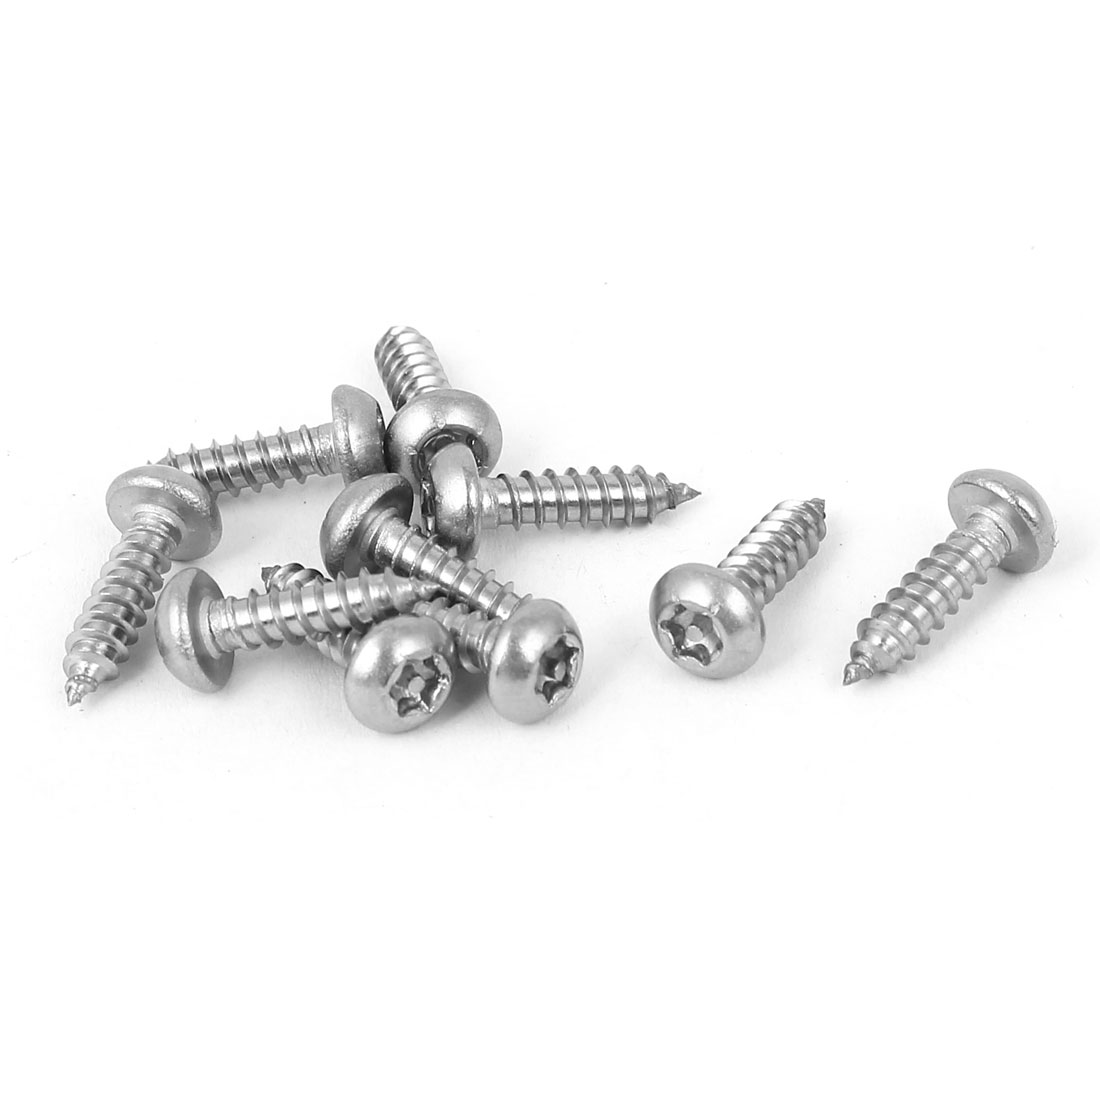 3.5mmx13mm Thread #6 Stainless Steel Round Torx Head Self Tapping Screws 10pcs